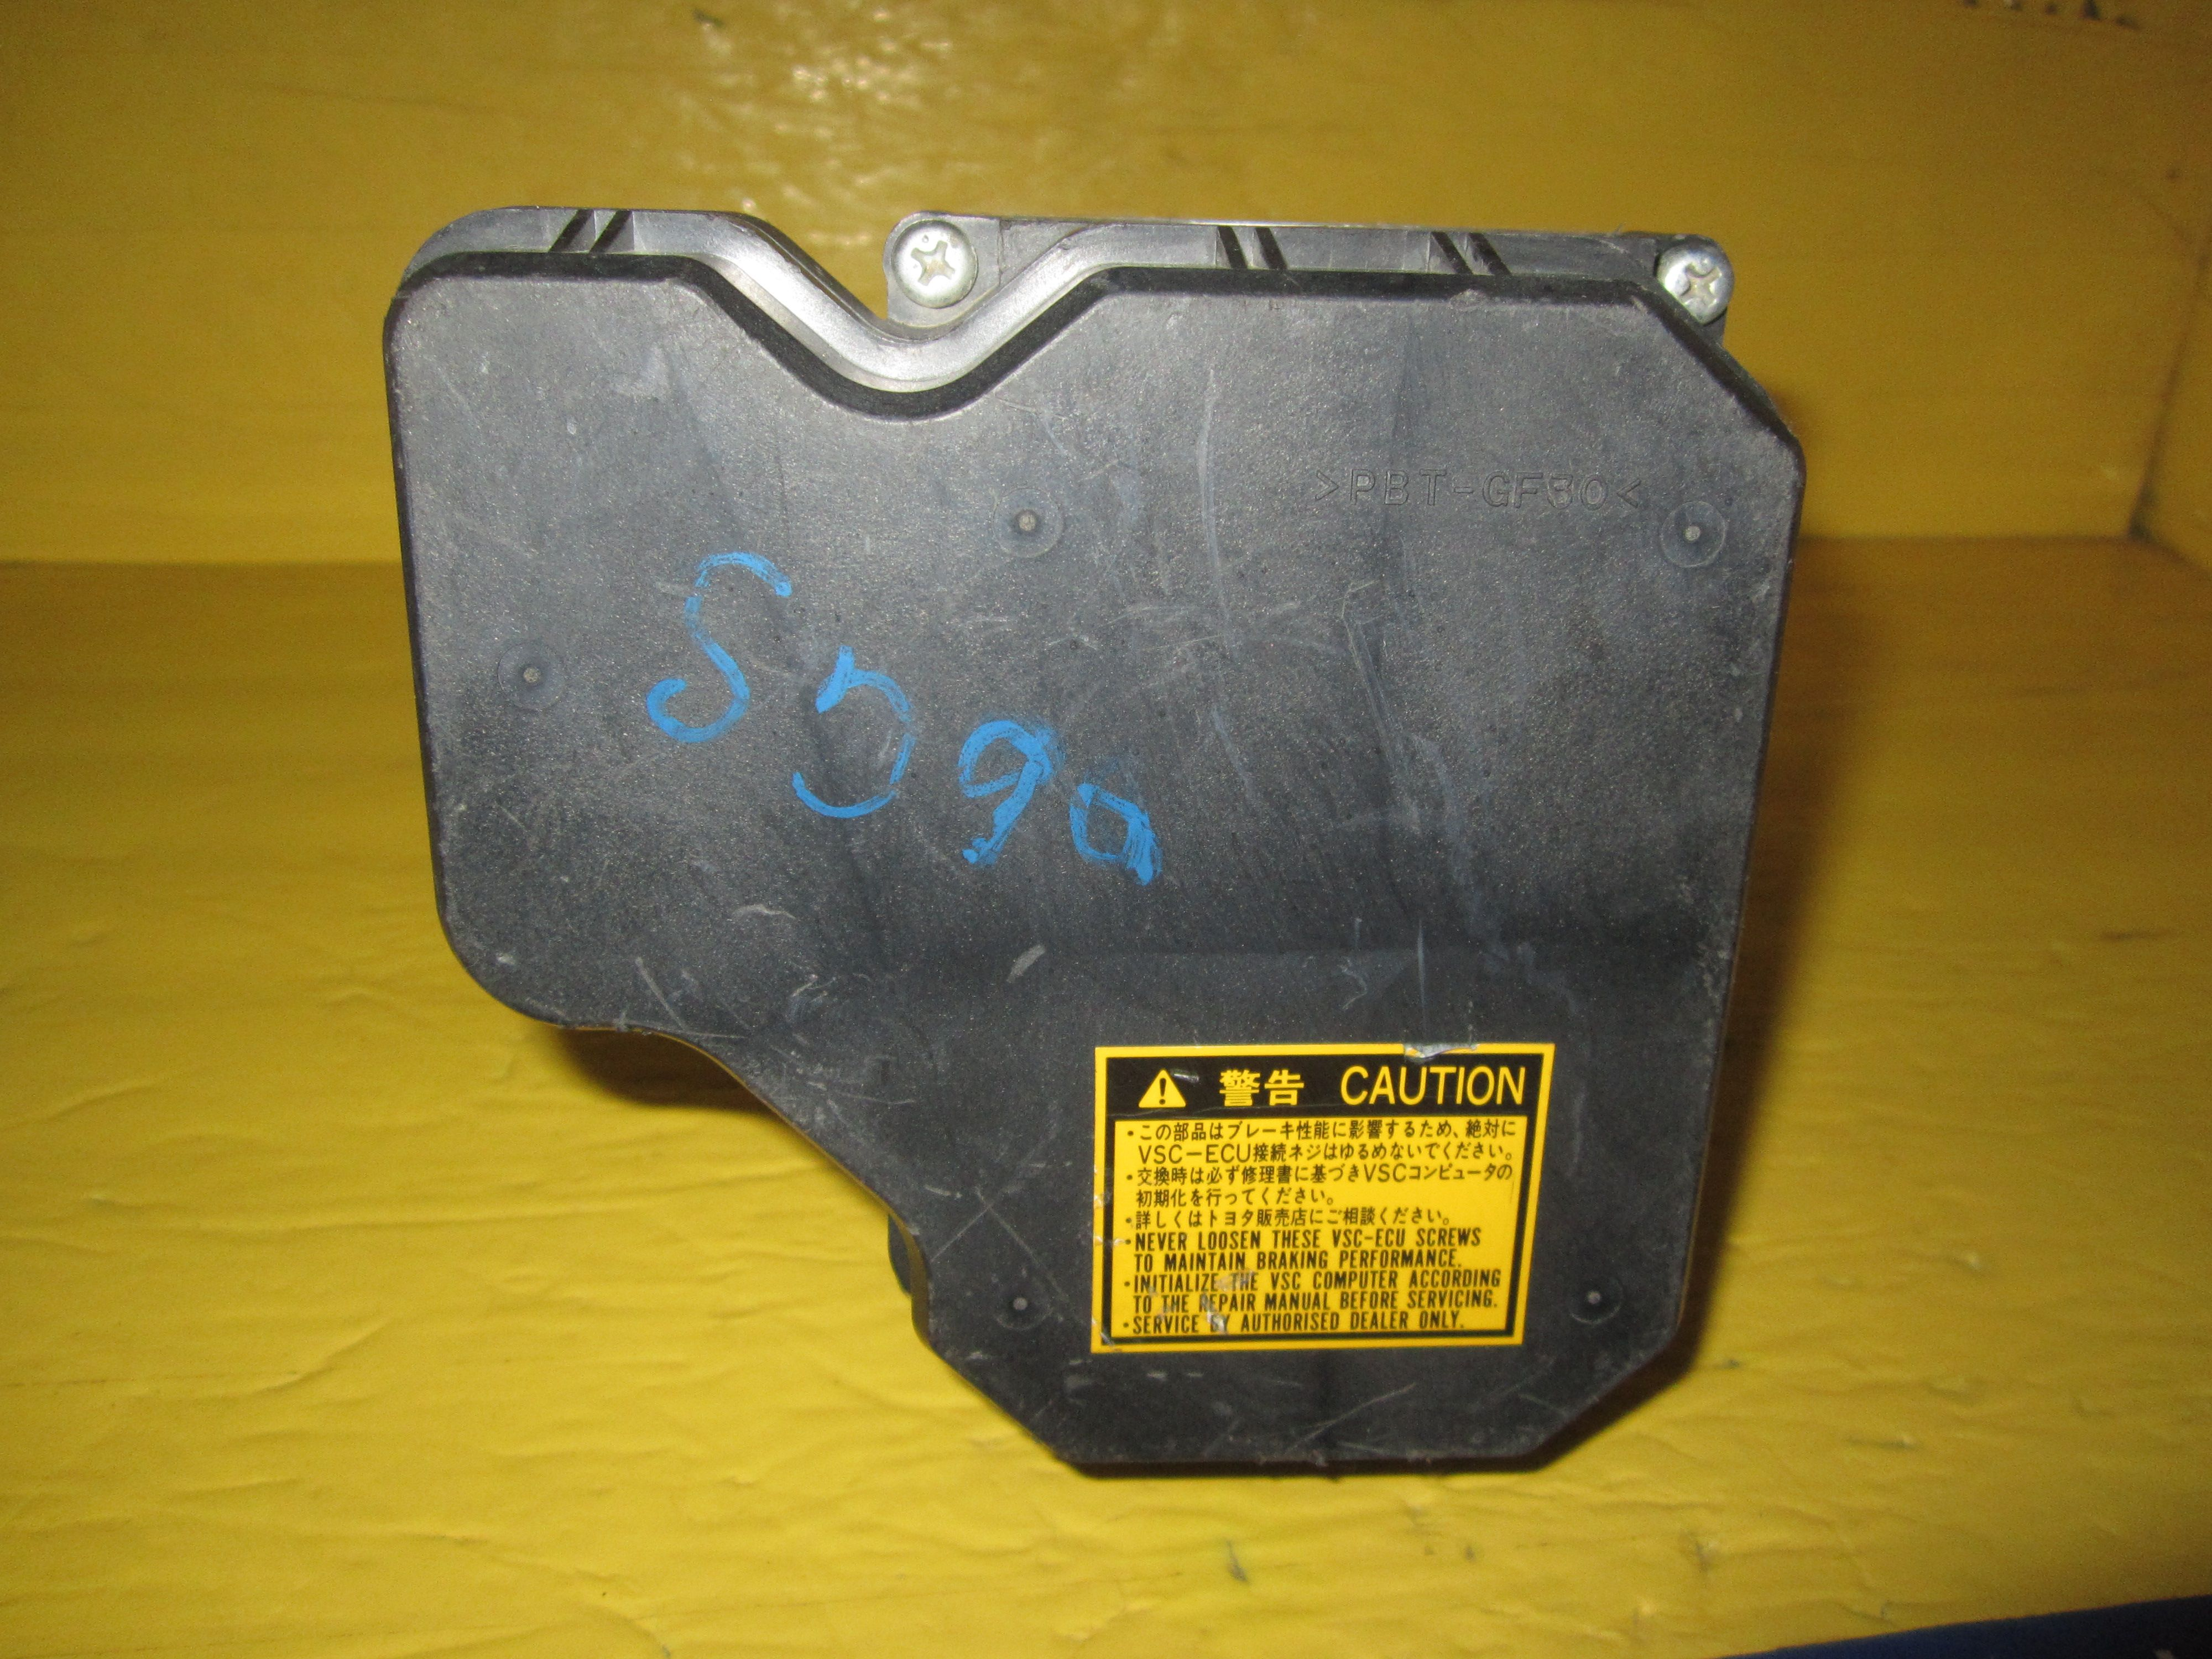 This ABS unit is for 2006 Lexus GS300 Please compare the